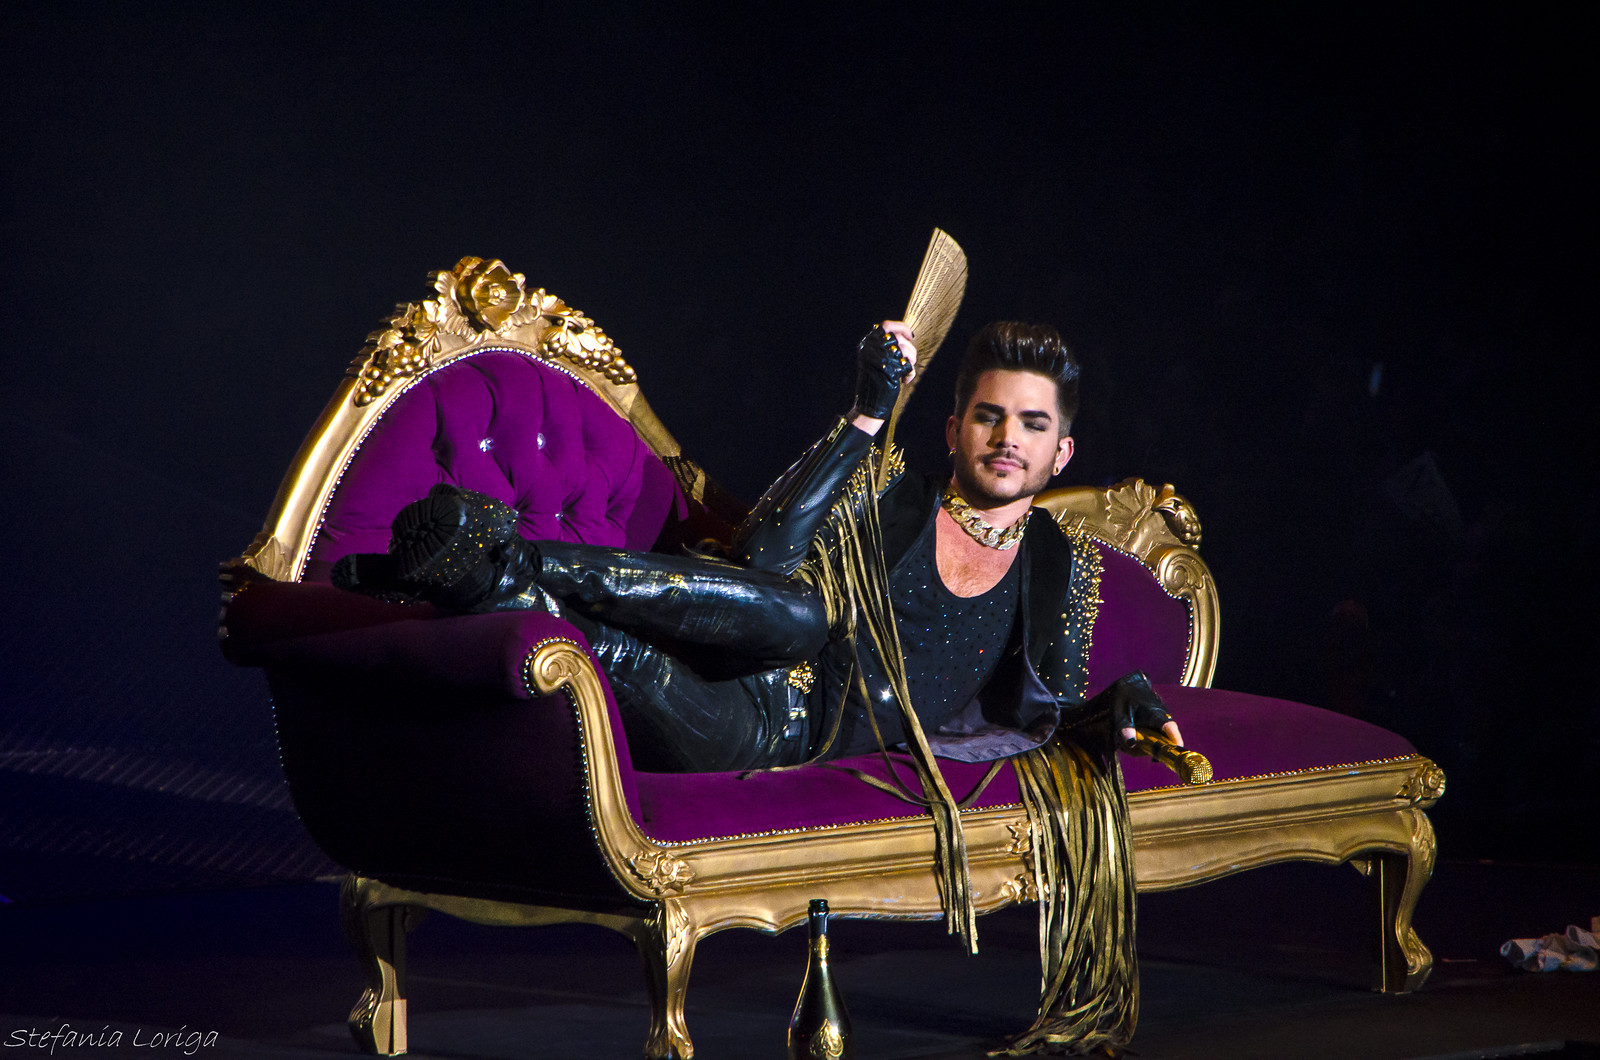 adam news stuttgart concert today adamtopia. Black Bedroom Furniture Sets. Home Design Ideas